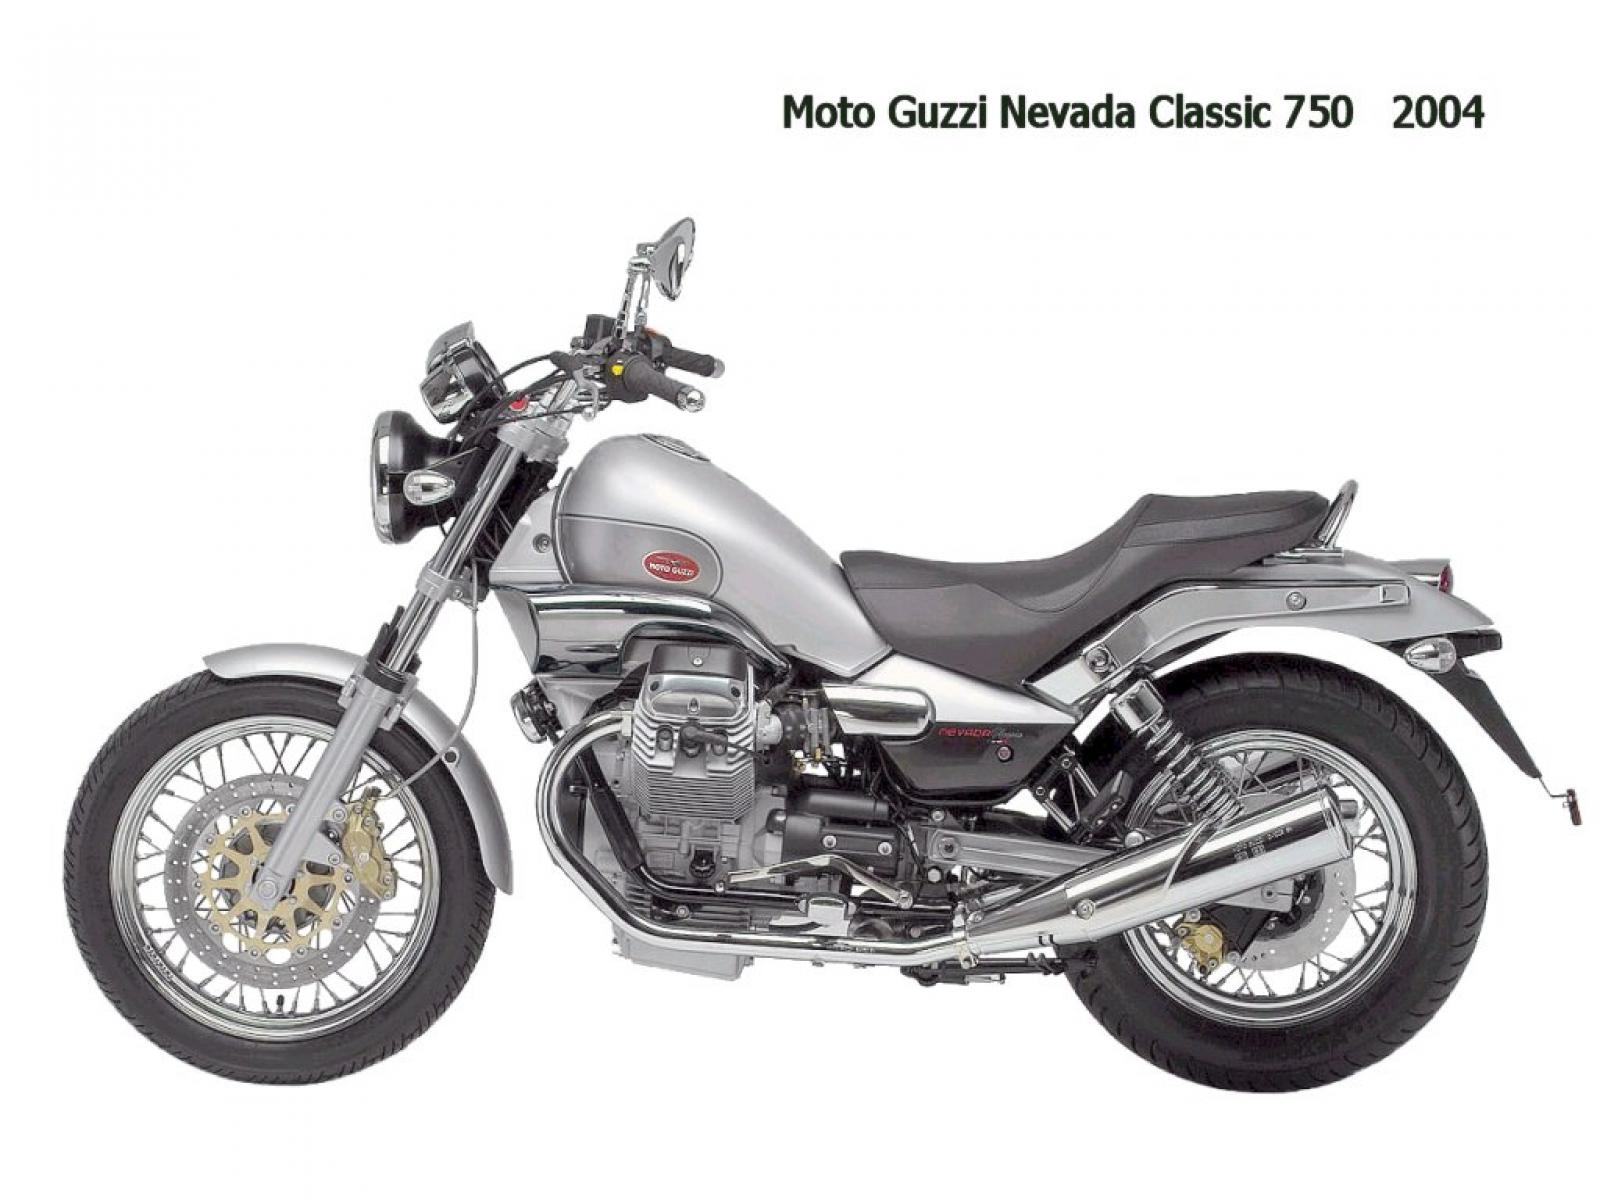 moto guzzi moto guzzi nevada 750 classic moto zombdrive com. Black Bedroom Furniture Sets. Home Design Ideas